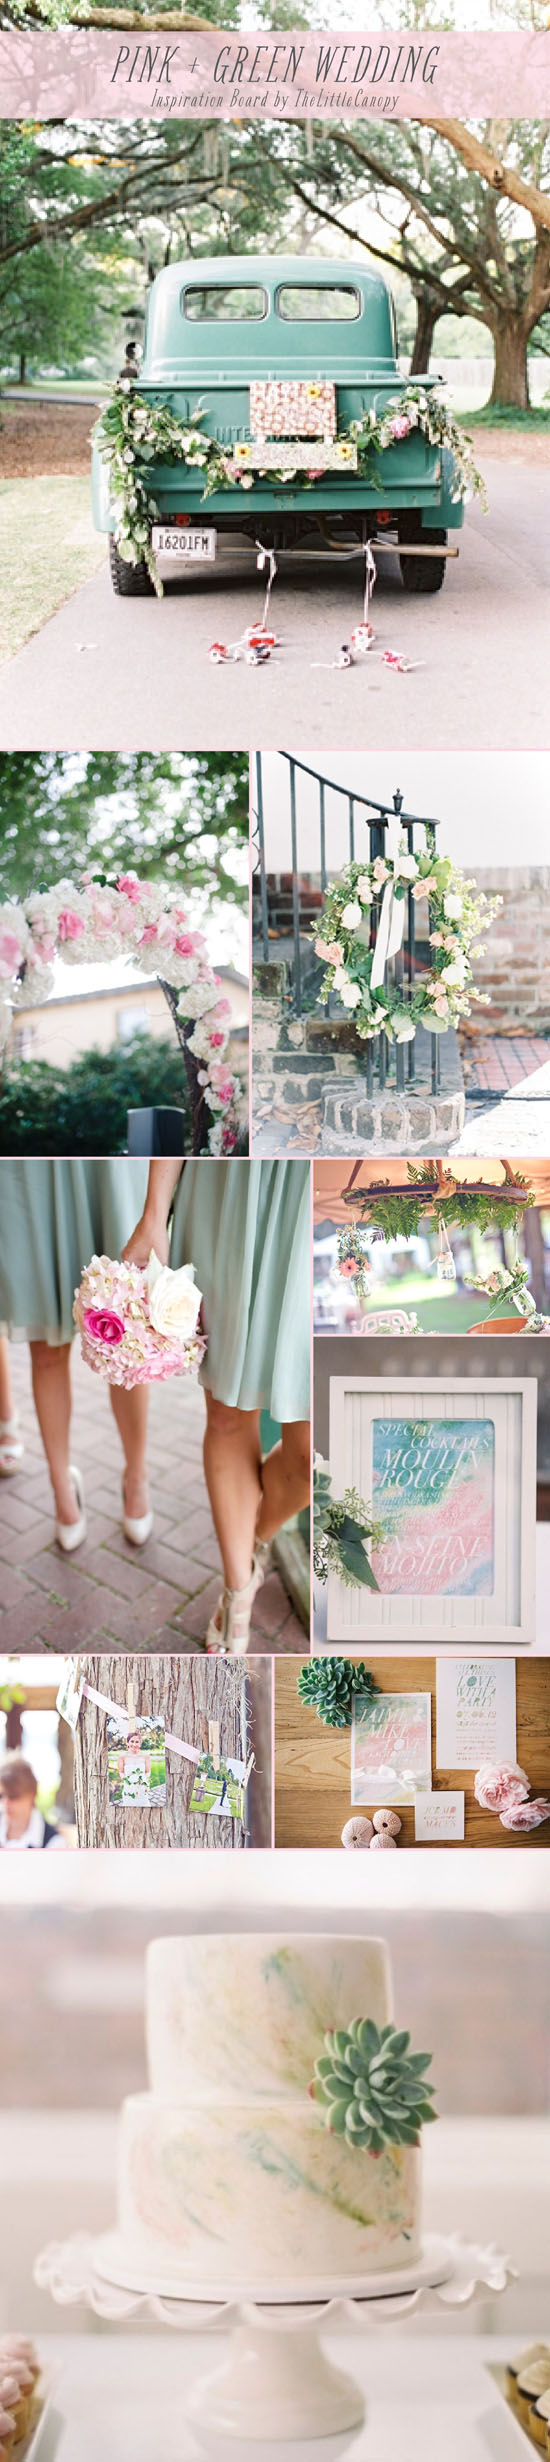 Pink and green artsy whimsical wedding inspiration board